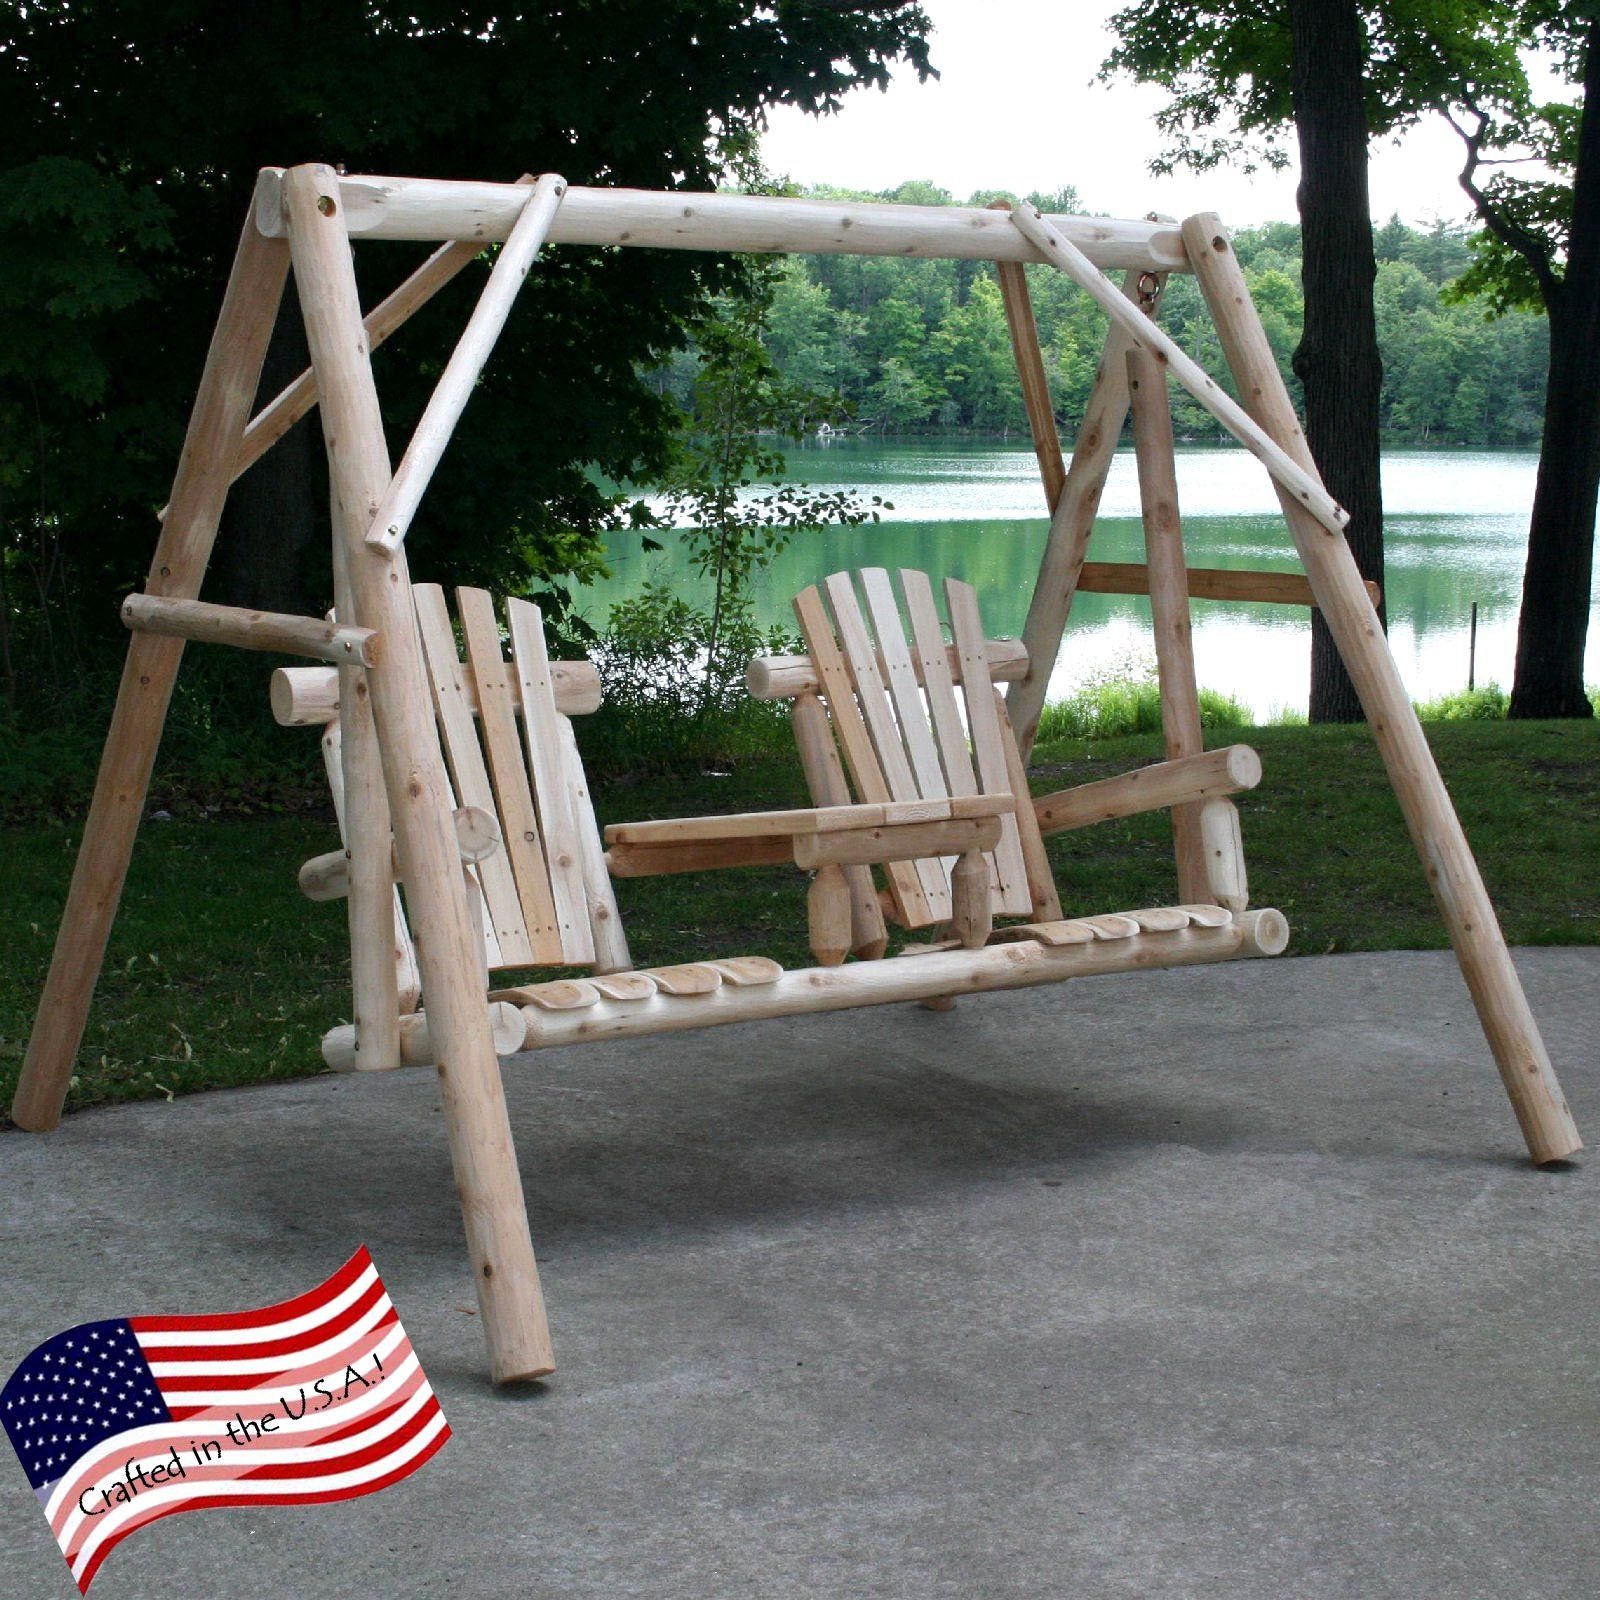 Lakeland Mills Tete A Tete Yard Swing Set | Products In 2019 For 2 Person Natural Cedar Wood Outdoor Swings (View 19 of 25)